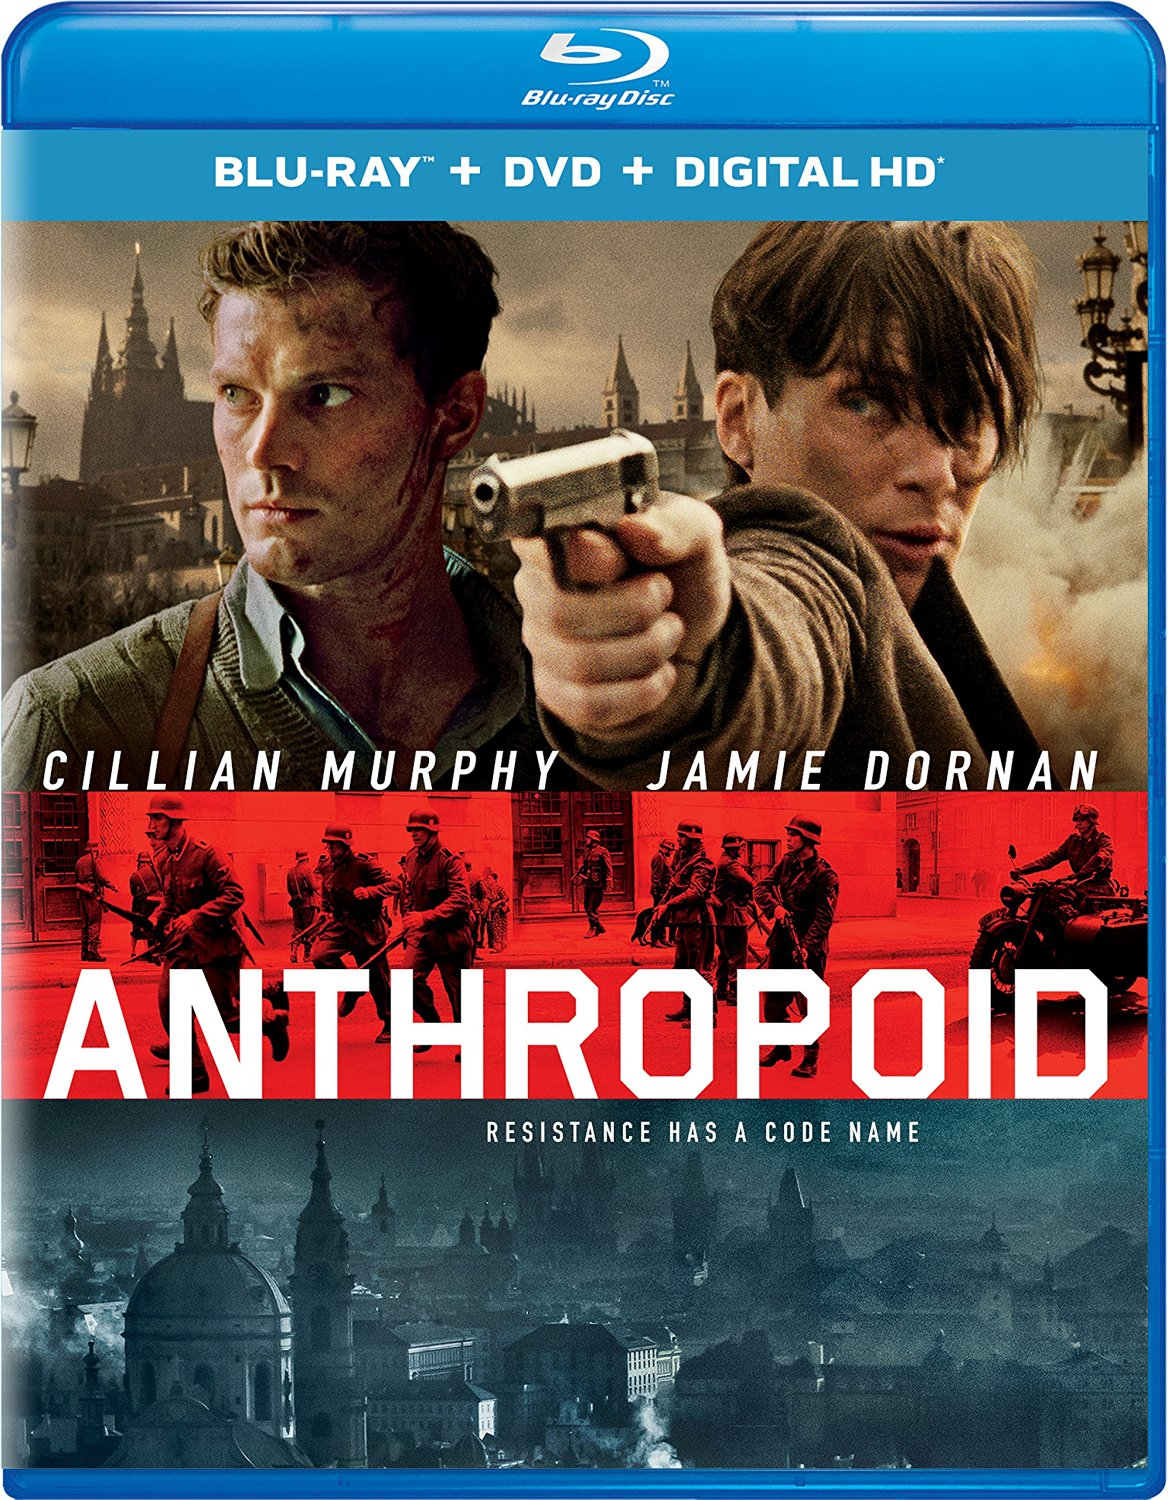 Anthropoid [Movie] - Anthropoid